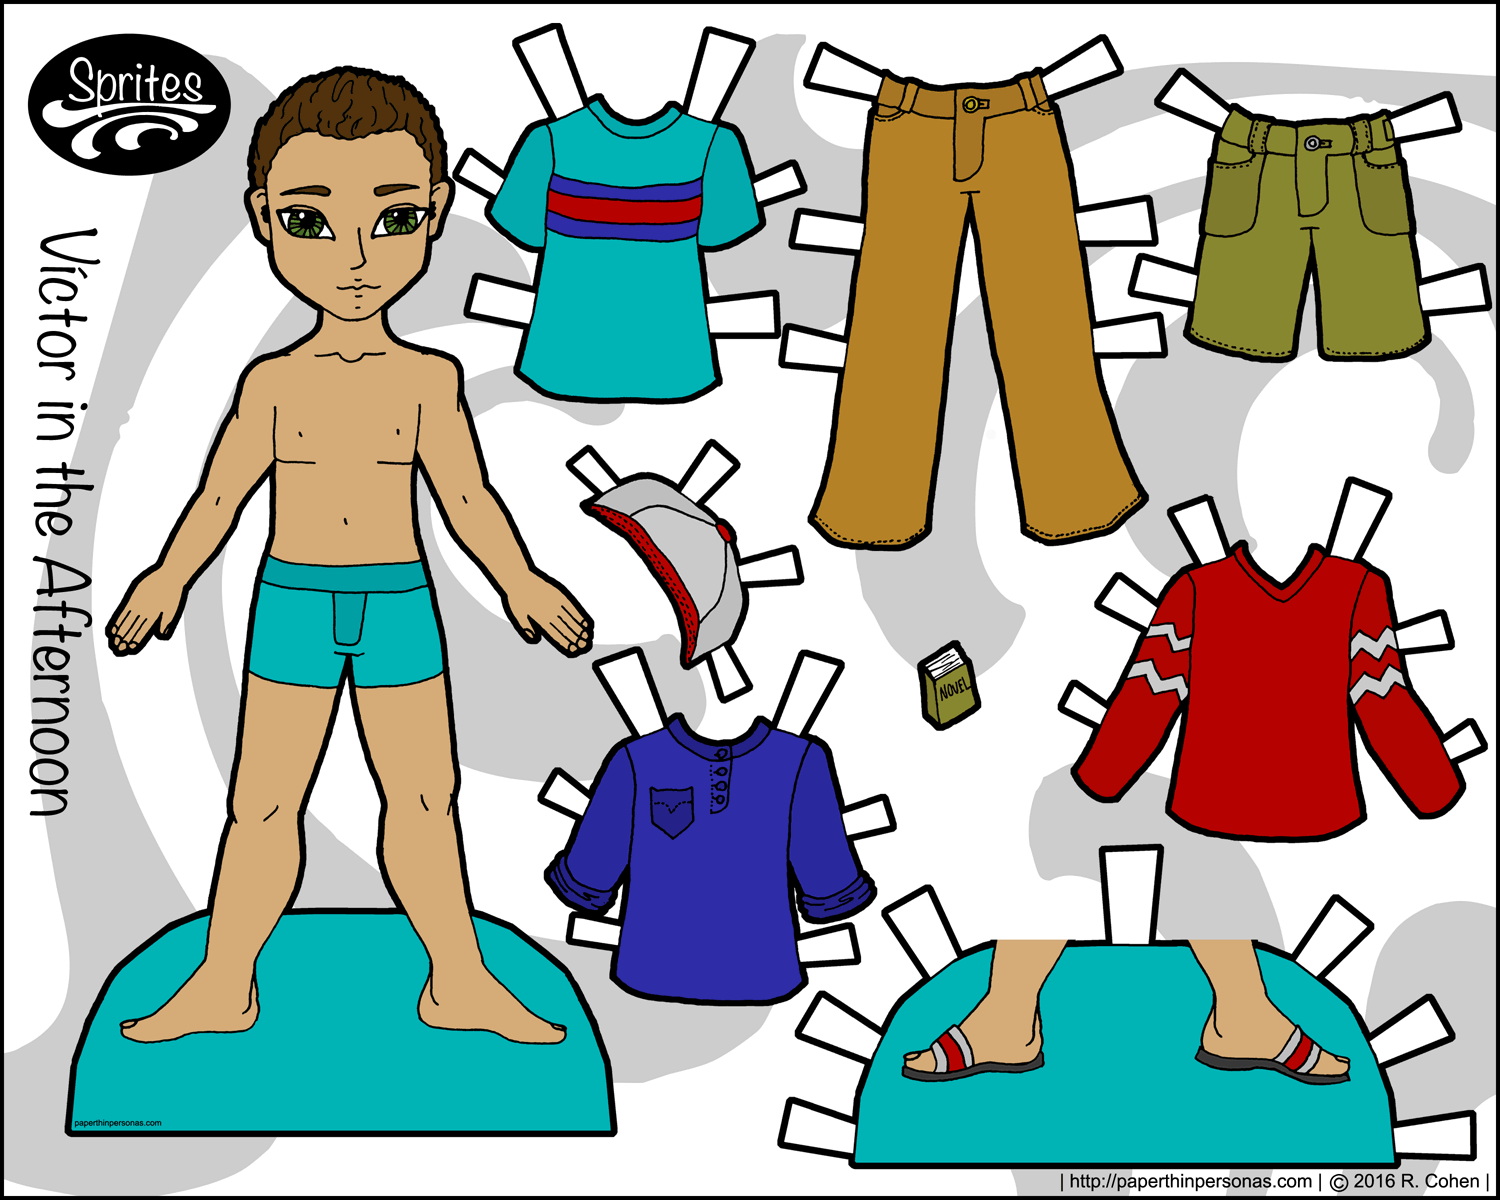 Latino Paper Doll Archives Paper Thin Personas